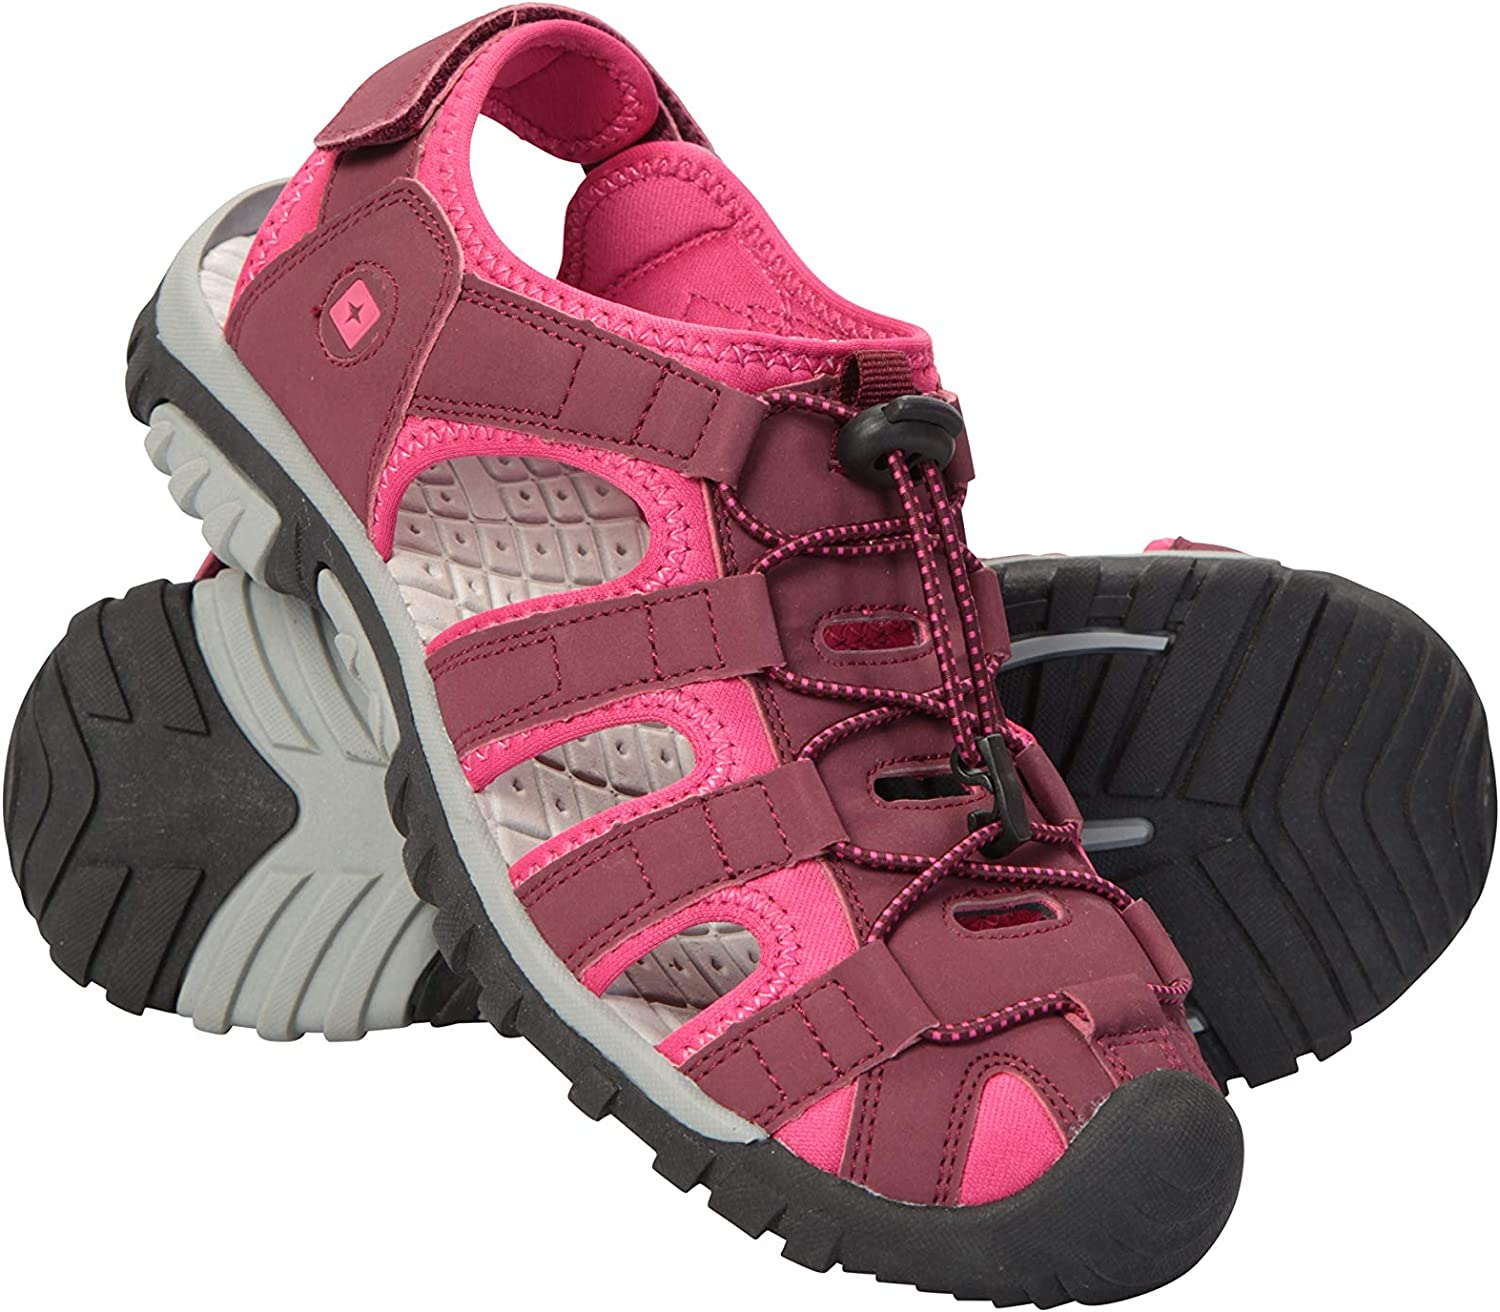 LADIES SIZE 3 4 5 6 7 8 PINK GREY ELASTIC TOUCH FASTENING SPORTS WALKING SANDALS